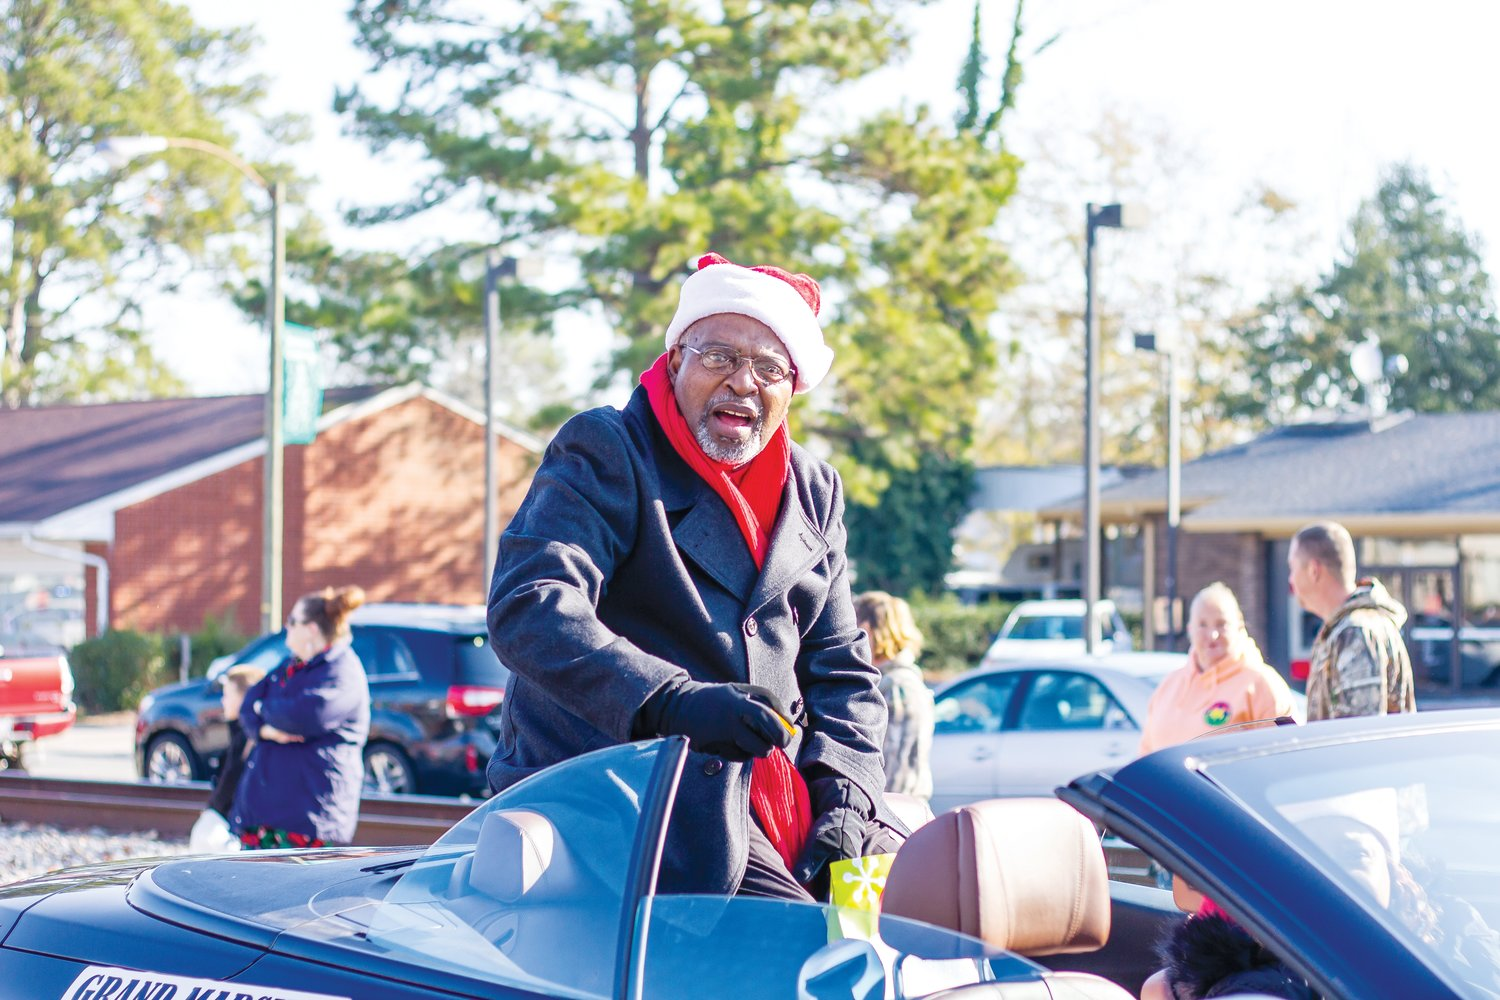 Parade Grand Marshal Al Southerland talks to on-lookers during the Christmas parade.